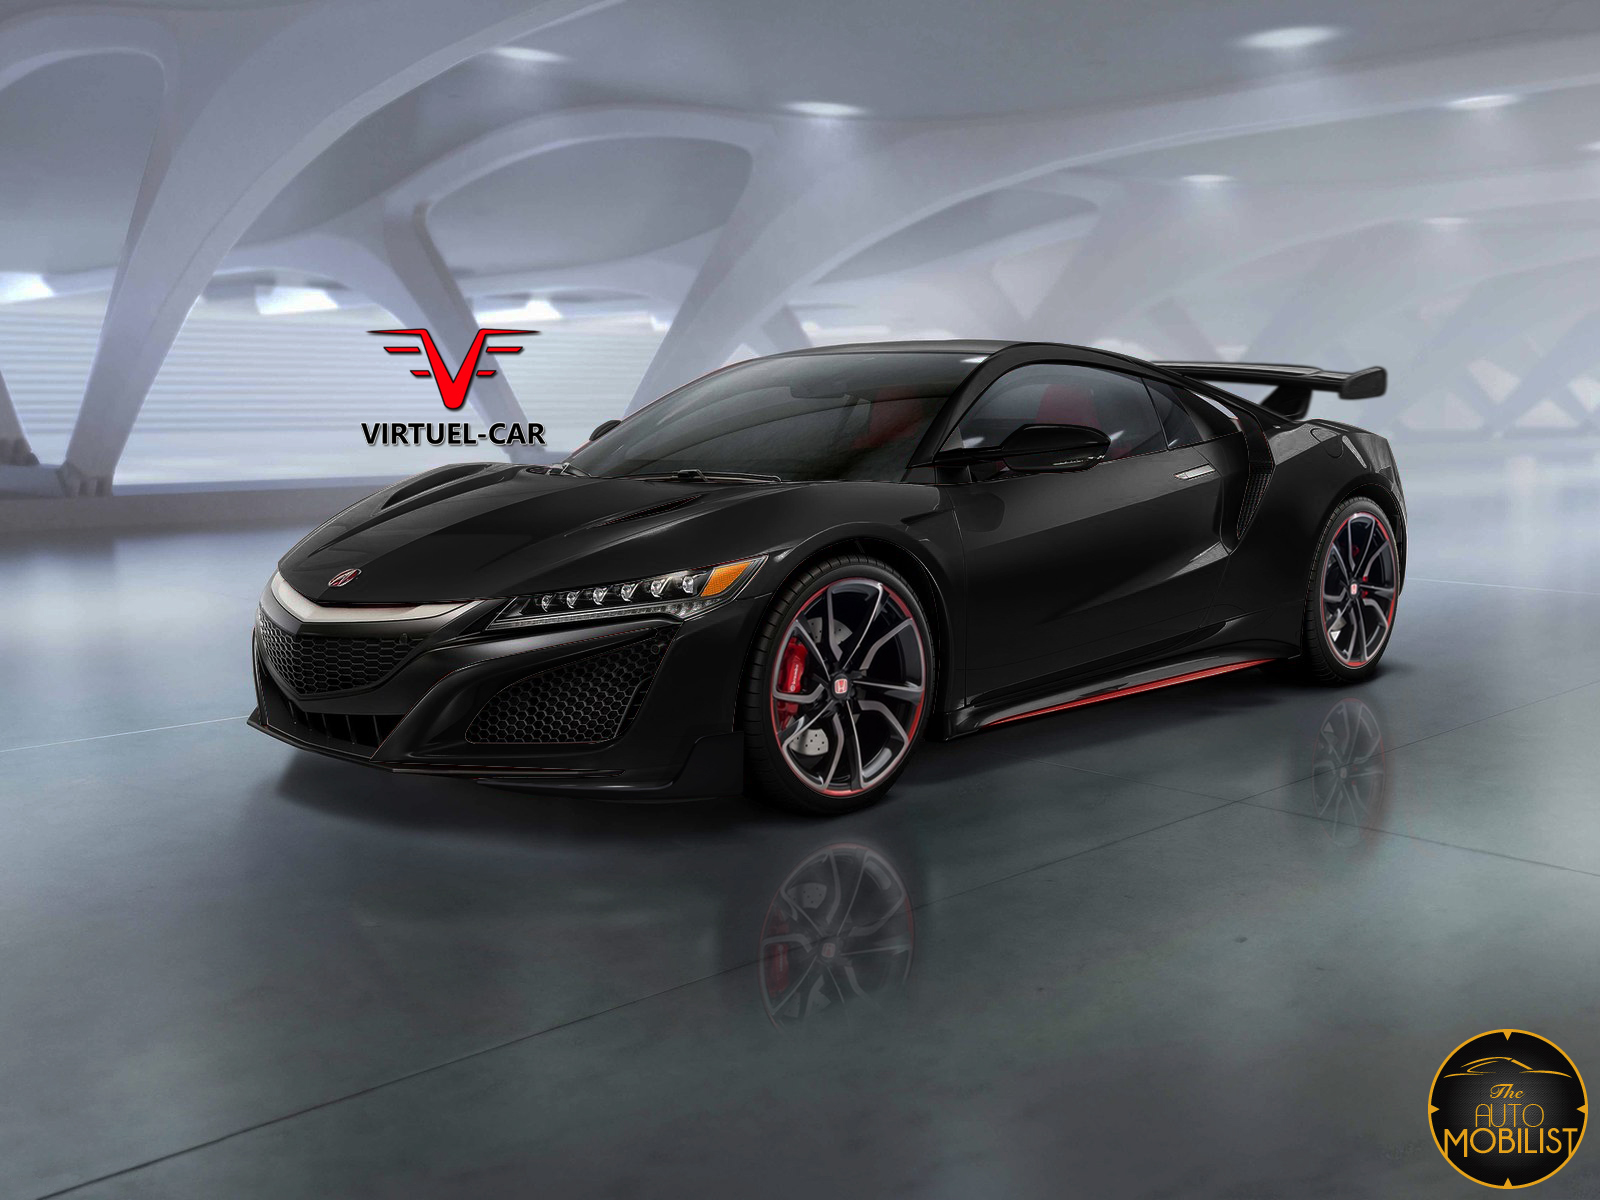 acura nsx news page 46 clublexus lexus forum discussion. Black Bedroom Furniture Sets. Home Design Ideas